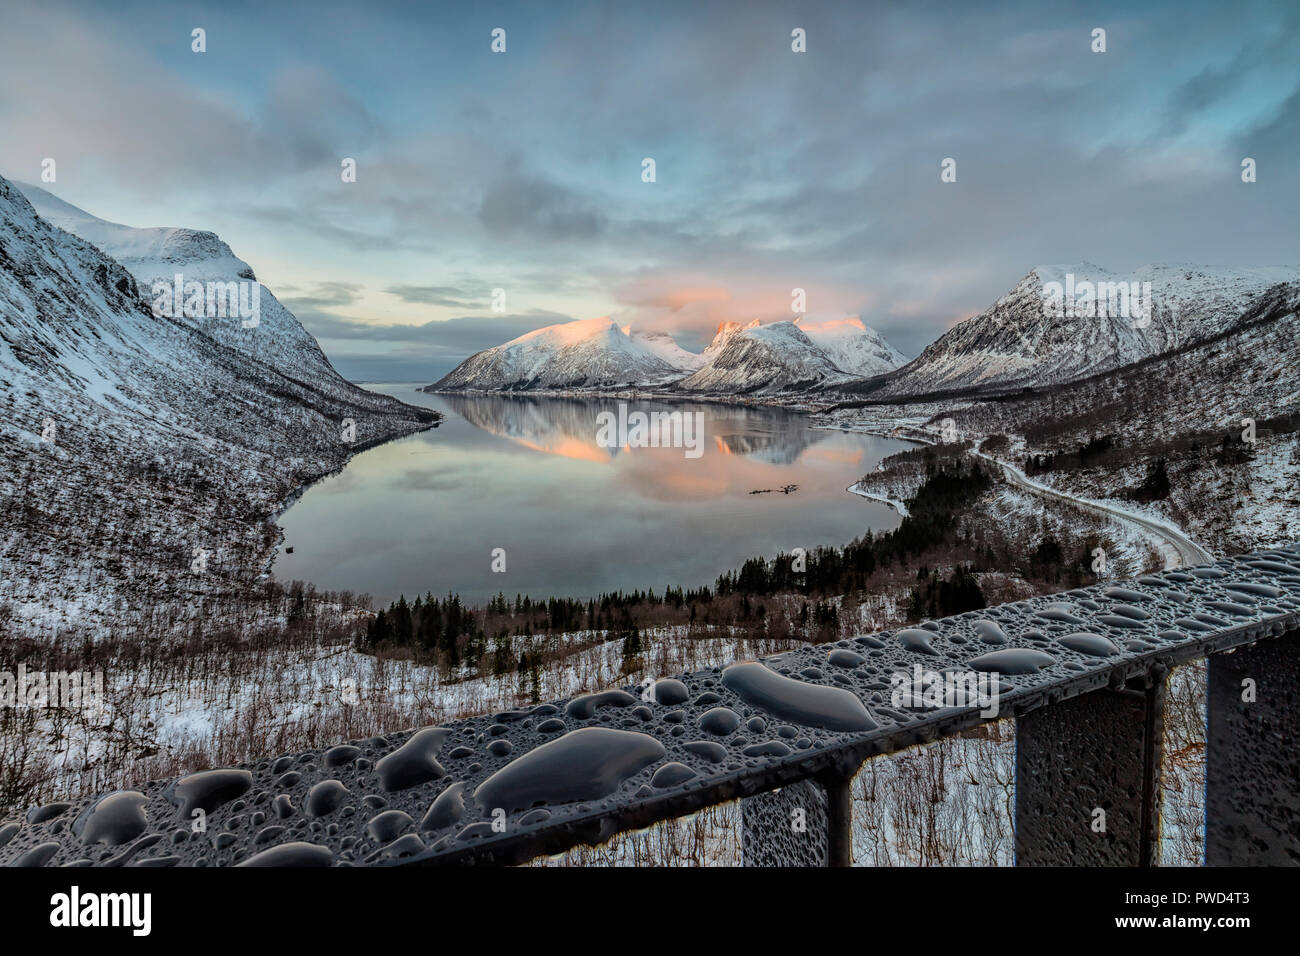 Drops of water frame the snowy peaks reflected in the cold sea at sunset Bergsbotn Senja Troms County Norway Europe - Stock Image